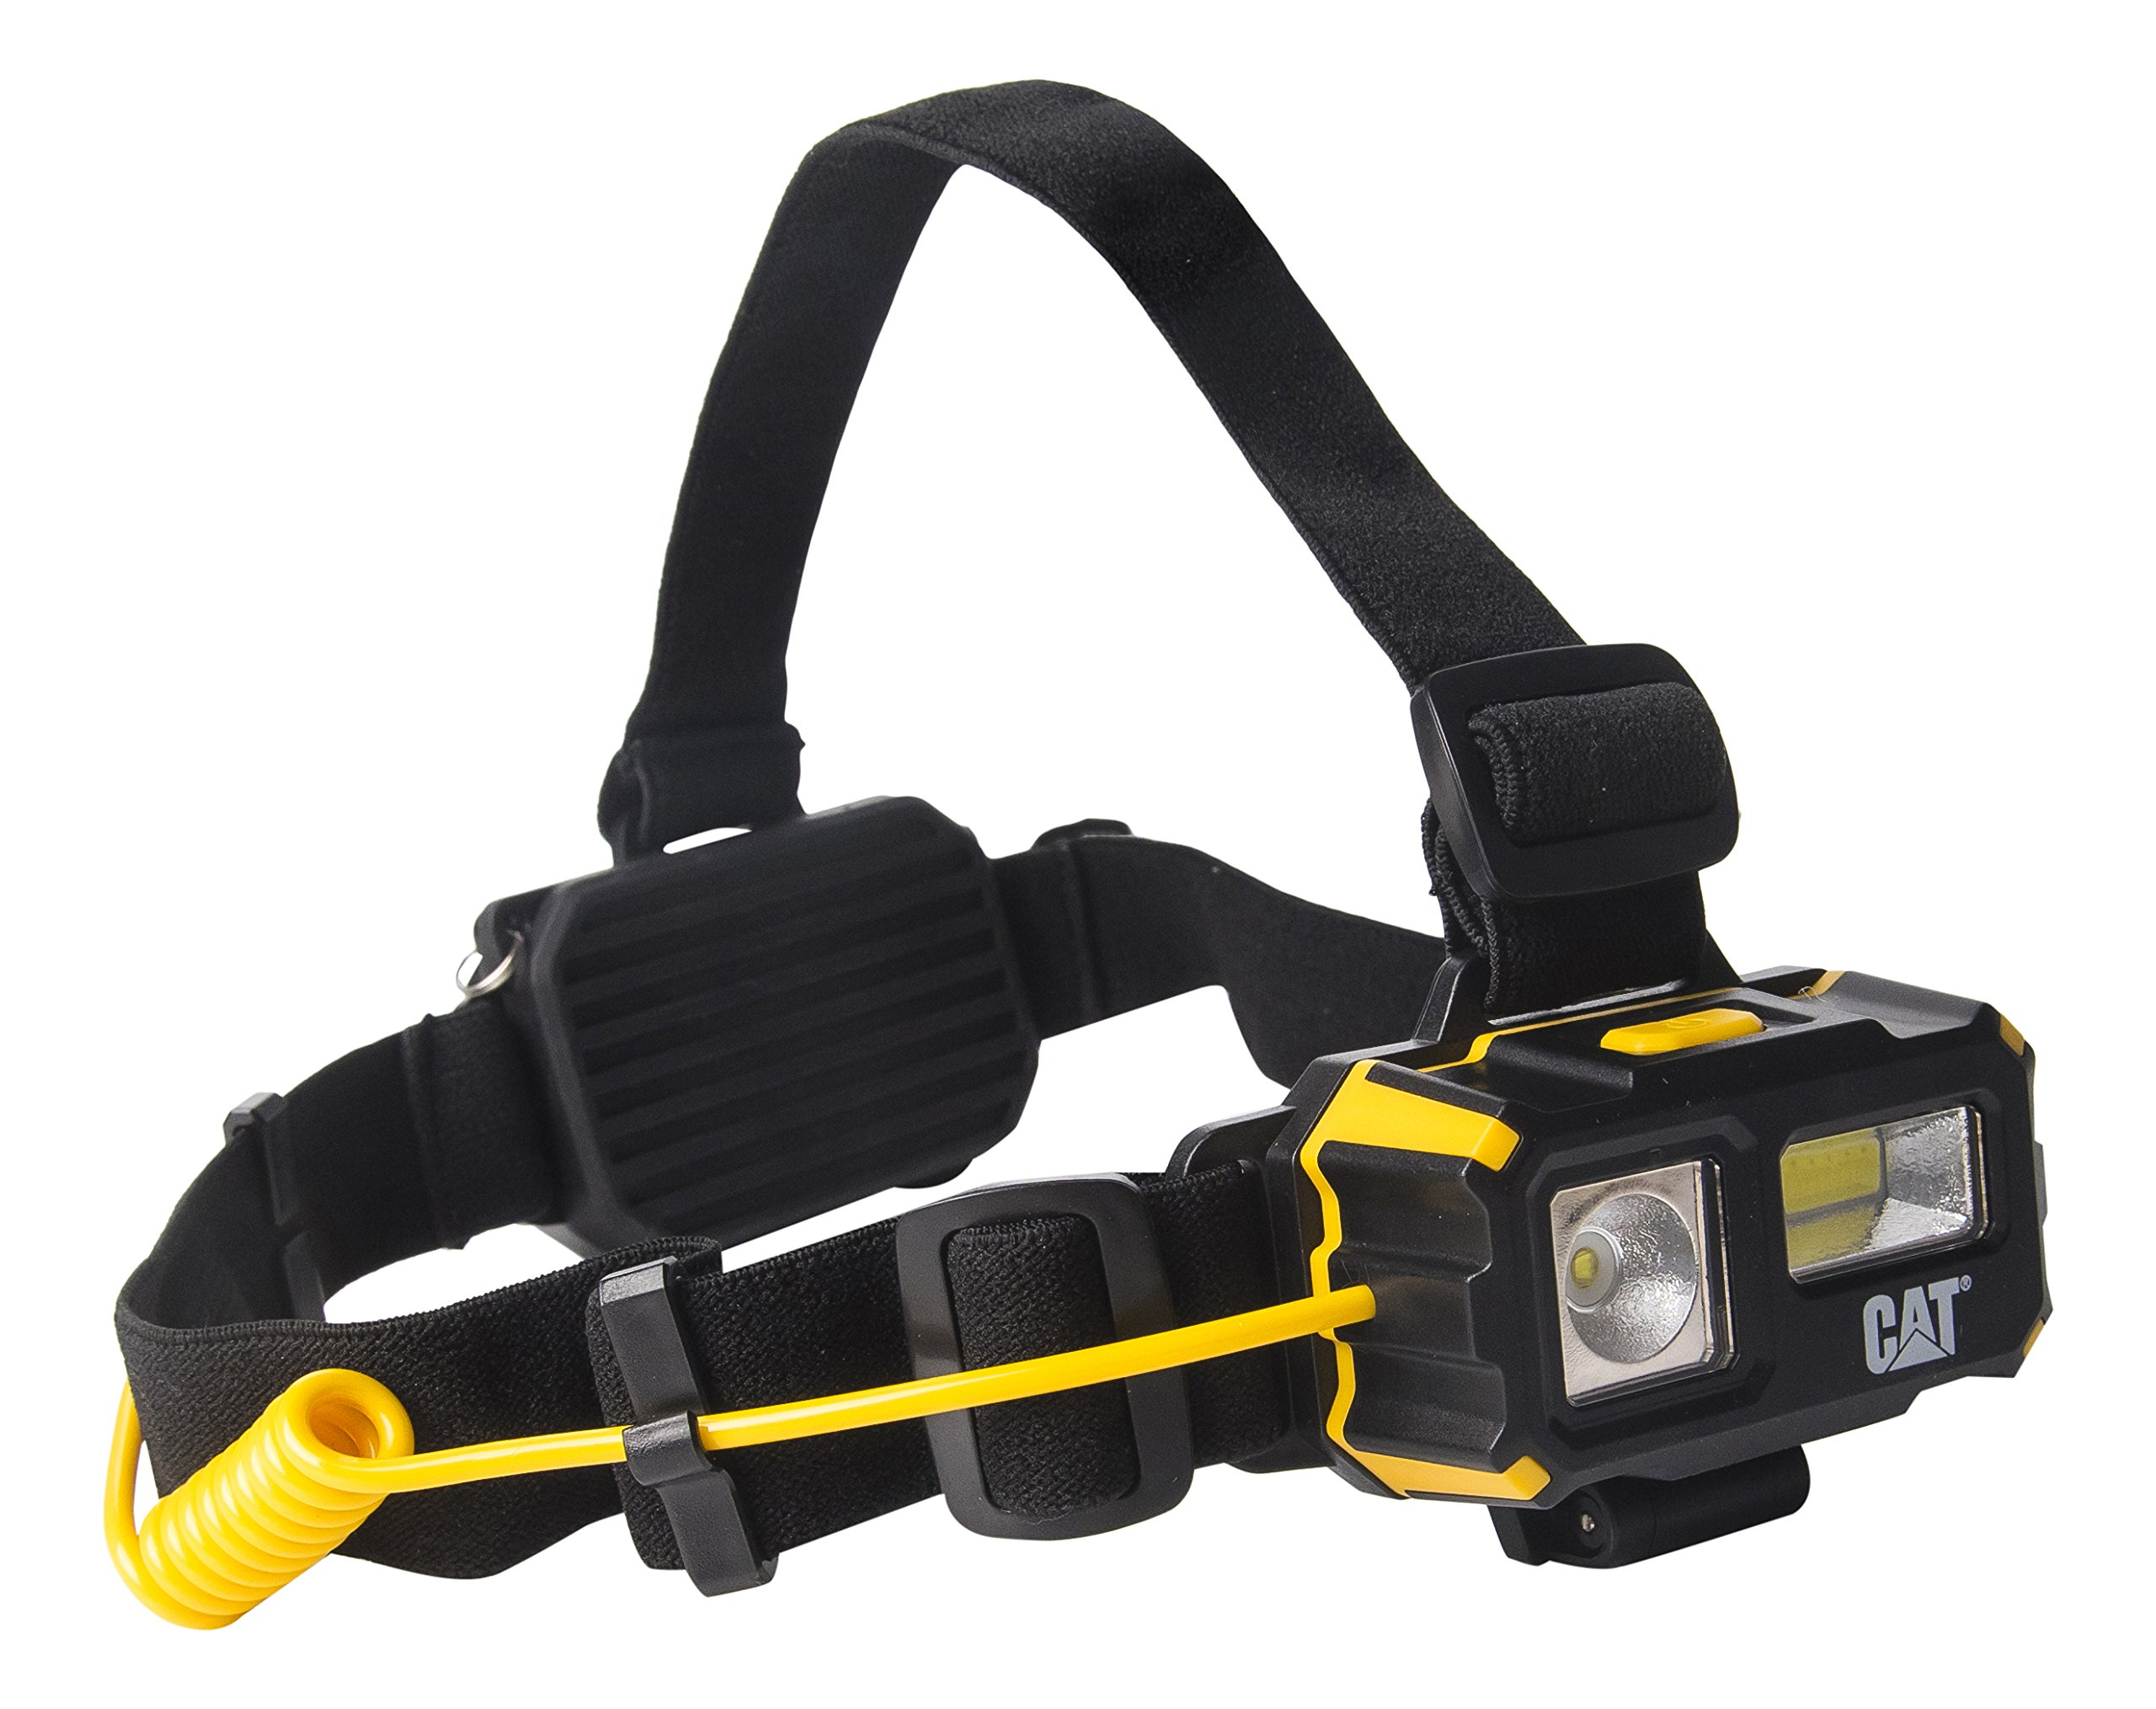 CAT CT4120 Multi Function Battery Powered Head Lamp for Camping, Running, Hiking, Reading, and Working, 3 AAA Batteries Included